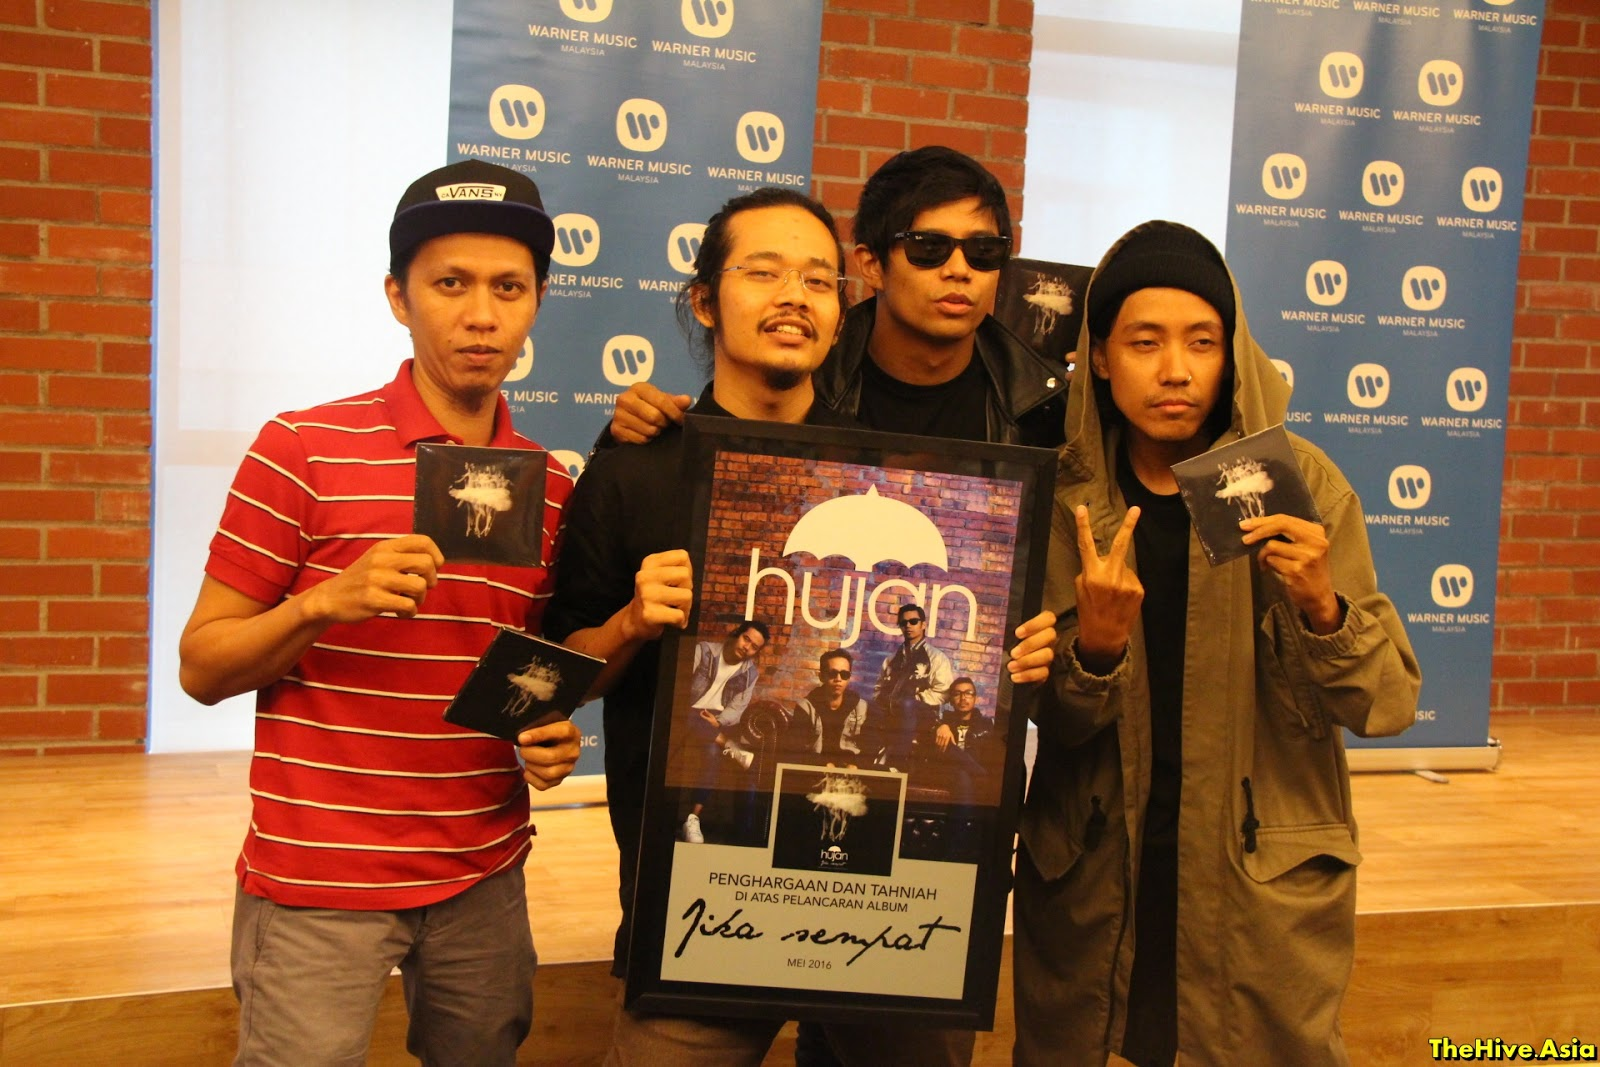 Malaysian Band Hujan Goes On Tour In London Thehive Asia